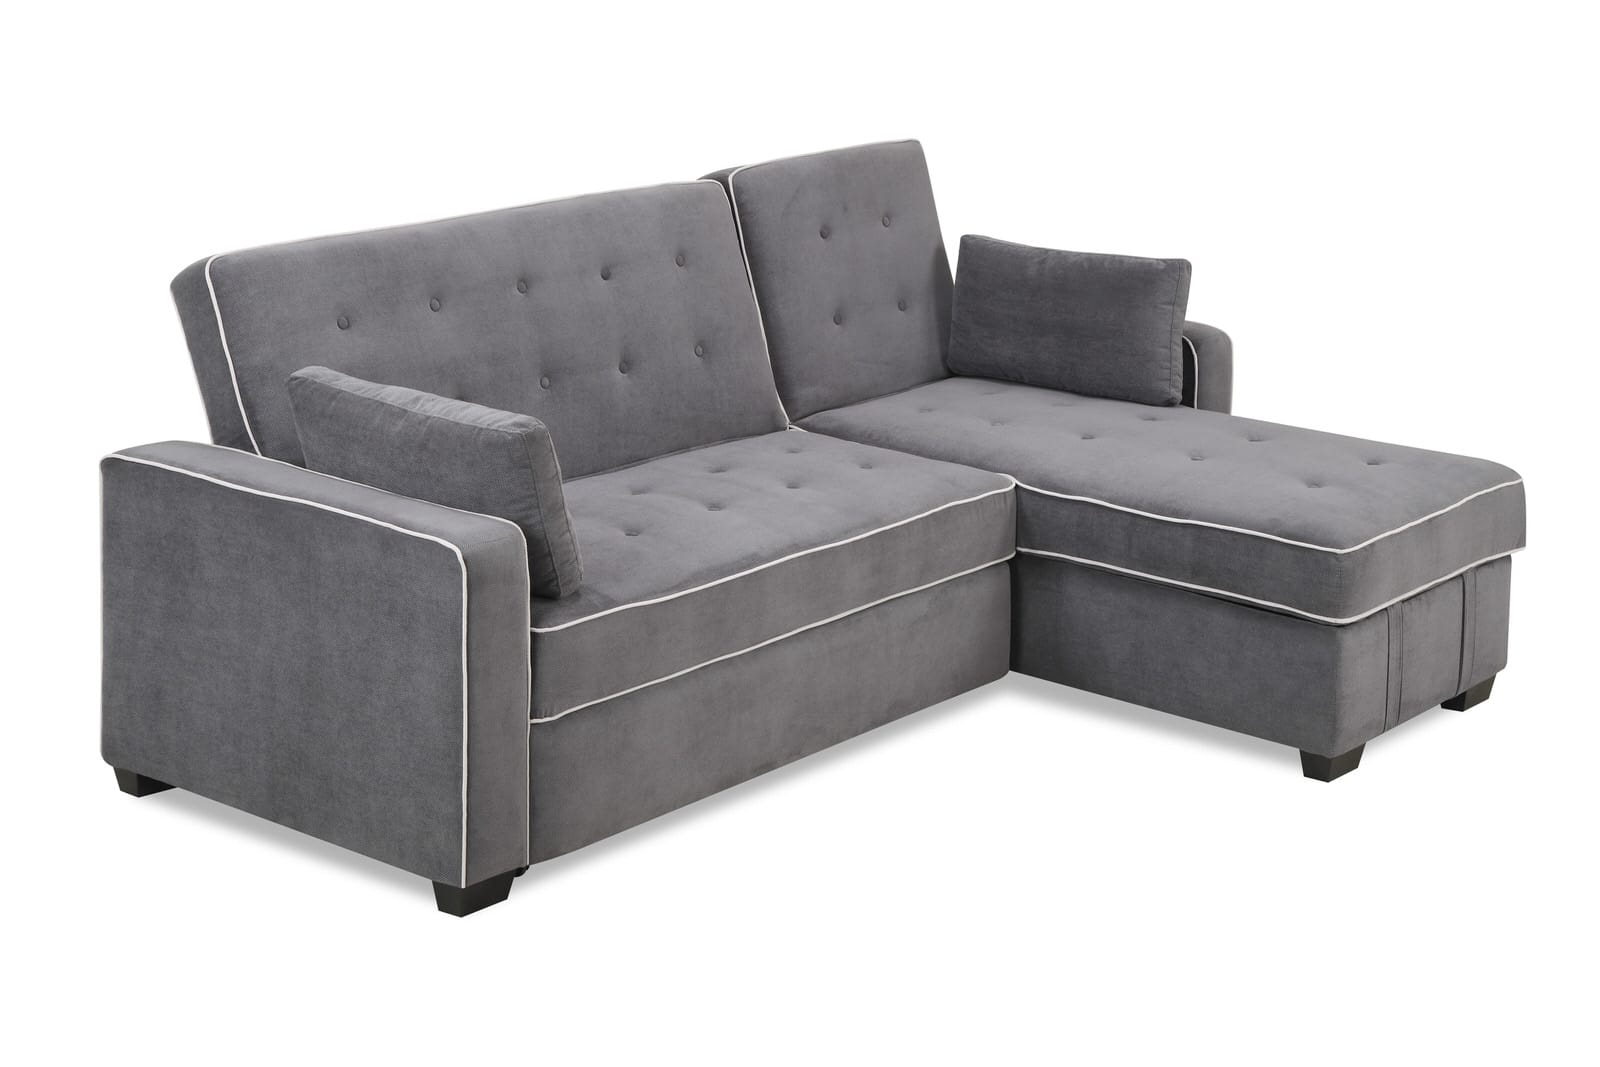 king size sofa sleepers bar augustine bed moon grey by serta lifestyle